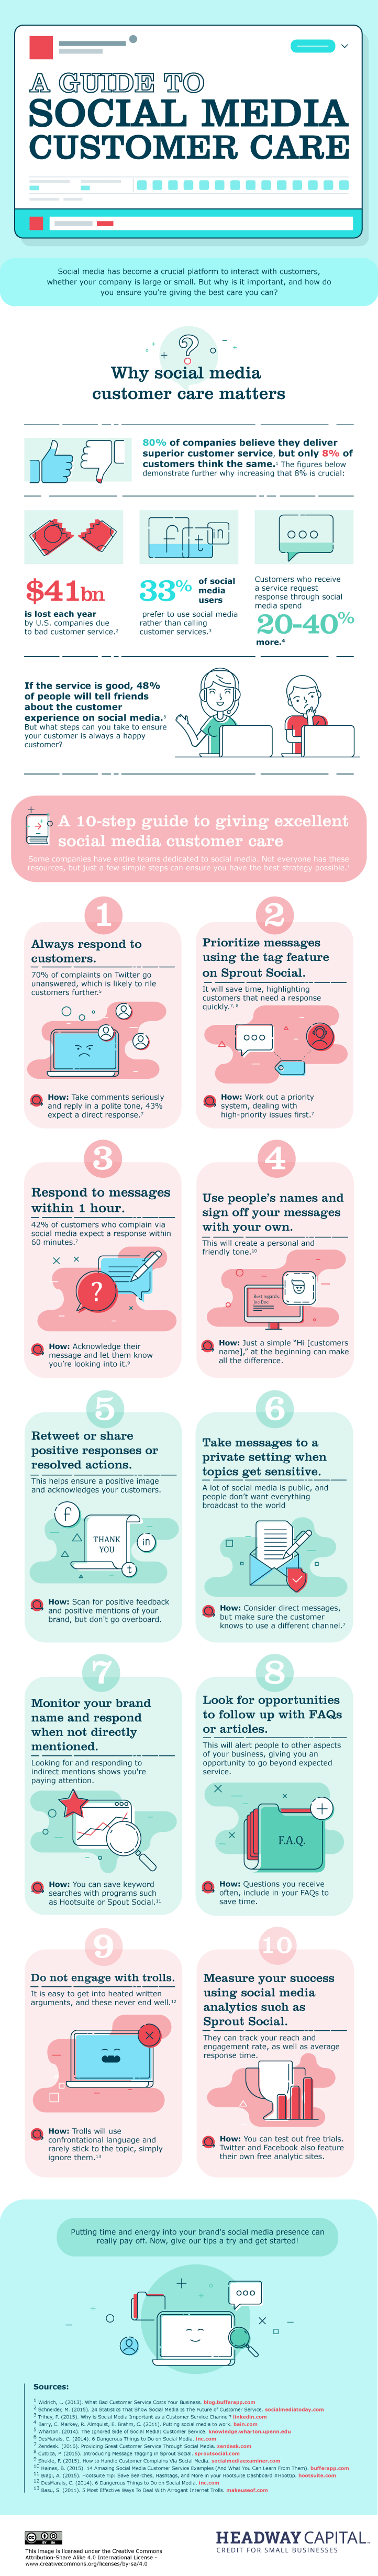 A Guide to Social Media Customer Care [Infographic]